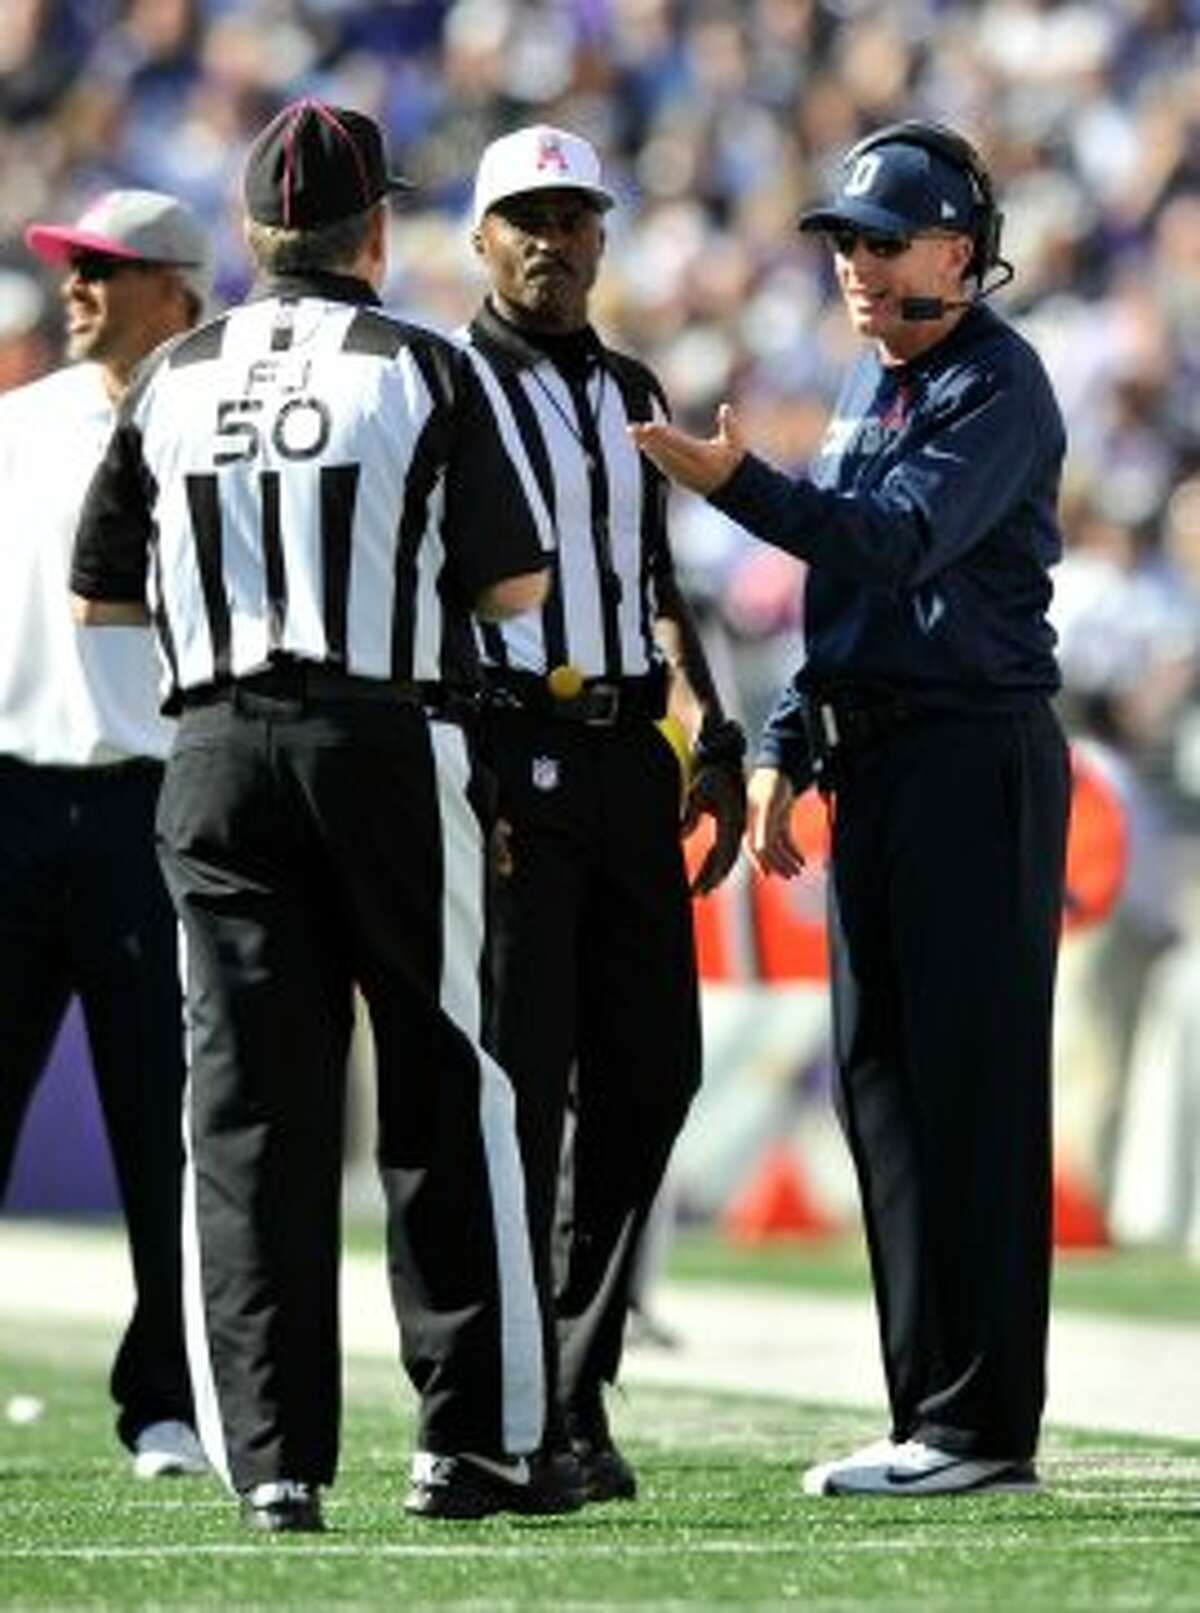 Cowboys coach Jason Garrett, right, speaks with field judge Mike Weir (50) and referee Mike Carey in the second half against the Ravens in Baltimore, Sunday, Oct. 14, 2012. (AP Photo/Gail Burton)